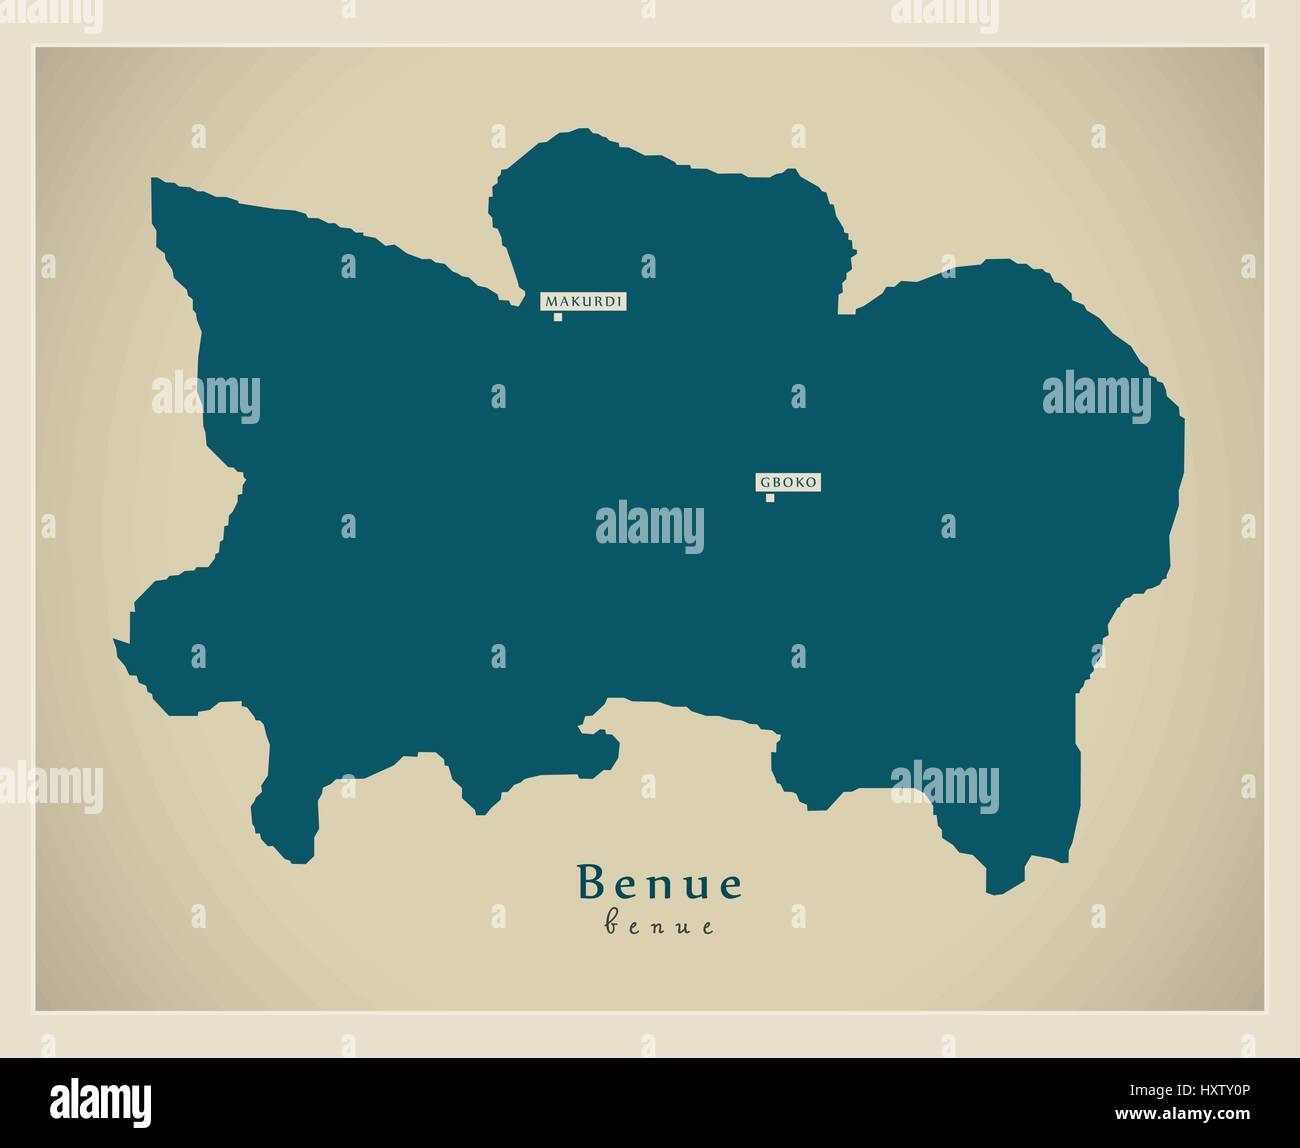 Benue State Stock Photos & Benue State Stock Images - Alamy on map of borno state, map of abia state, map of bay state, map of nasarawa state, map of adamawa state, map of bayelsa state, map of colima state, map of kaduna state, map of rivers state, map of osun state, map of bihar state, map of zamfara state, map of rio de janeiro state, map of anambra state, map of kogi state, map of ekiti state, map of enugu state, map of plateau state, map of gombe state, map of ogun state,